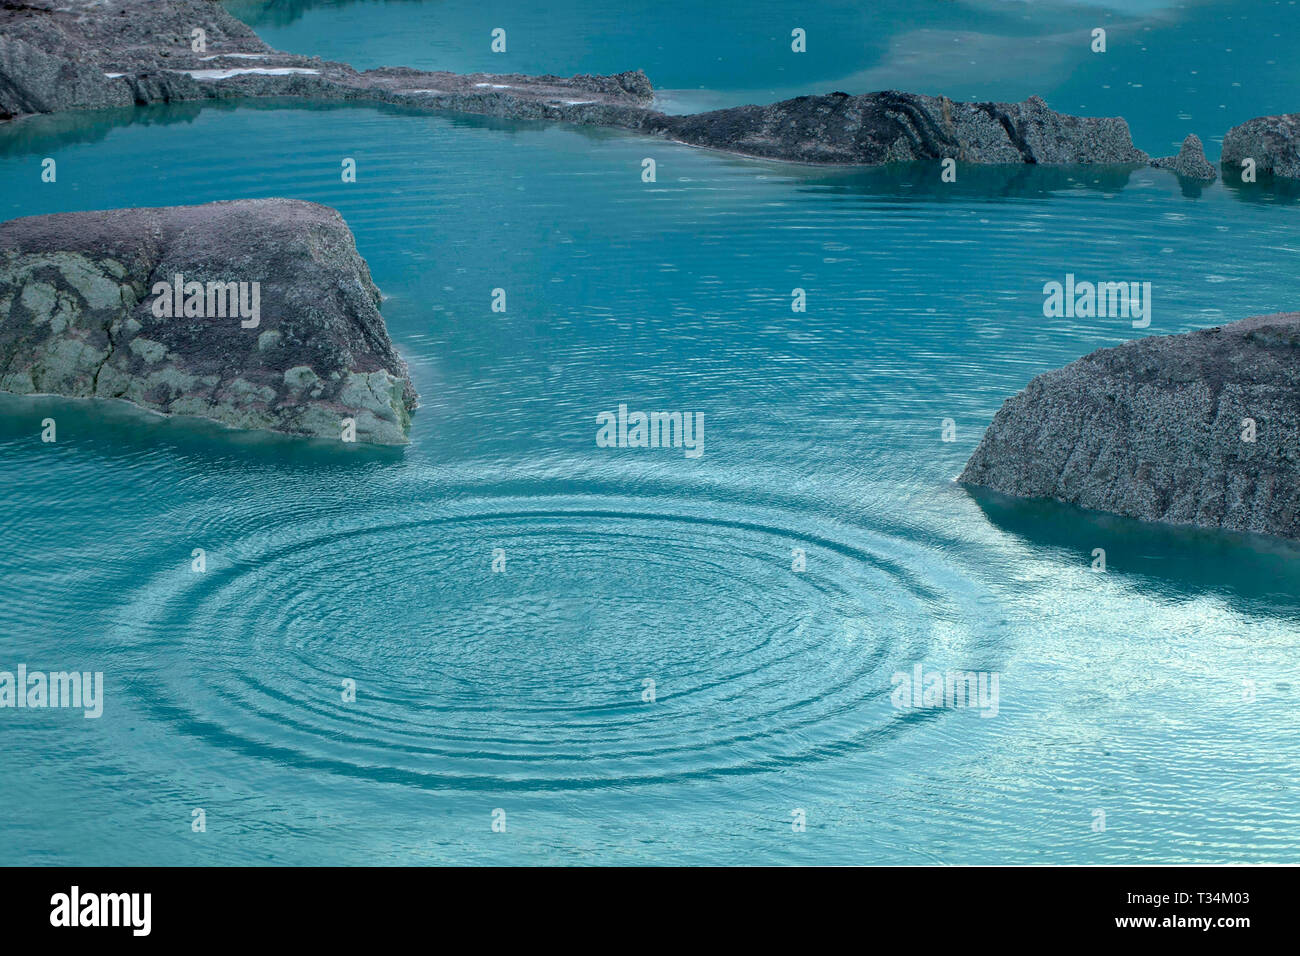 Concentric ripples in a lake, India - Stock Image